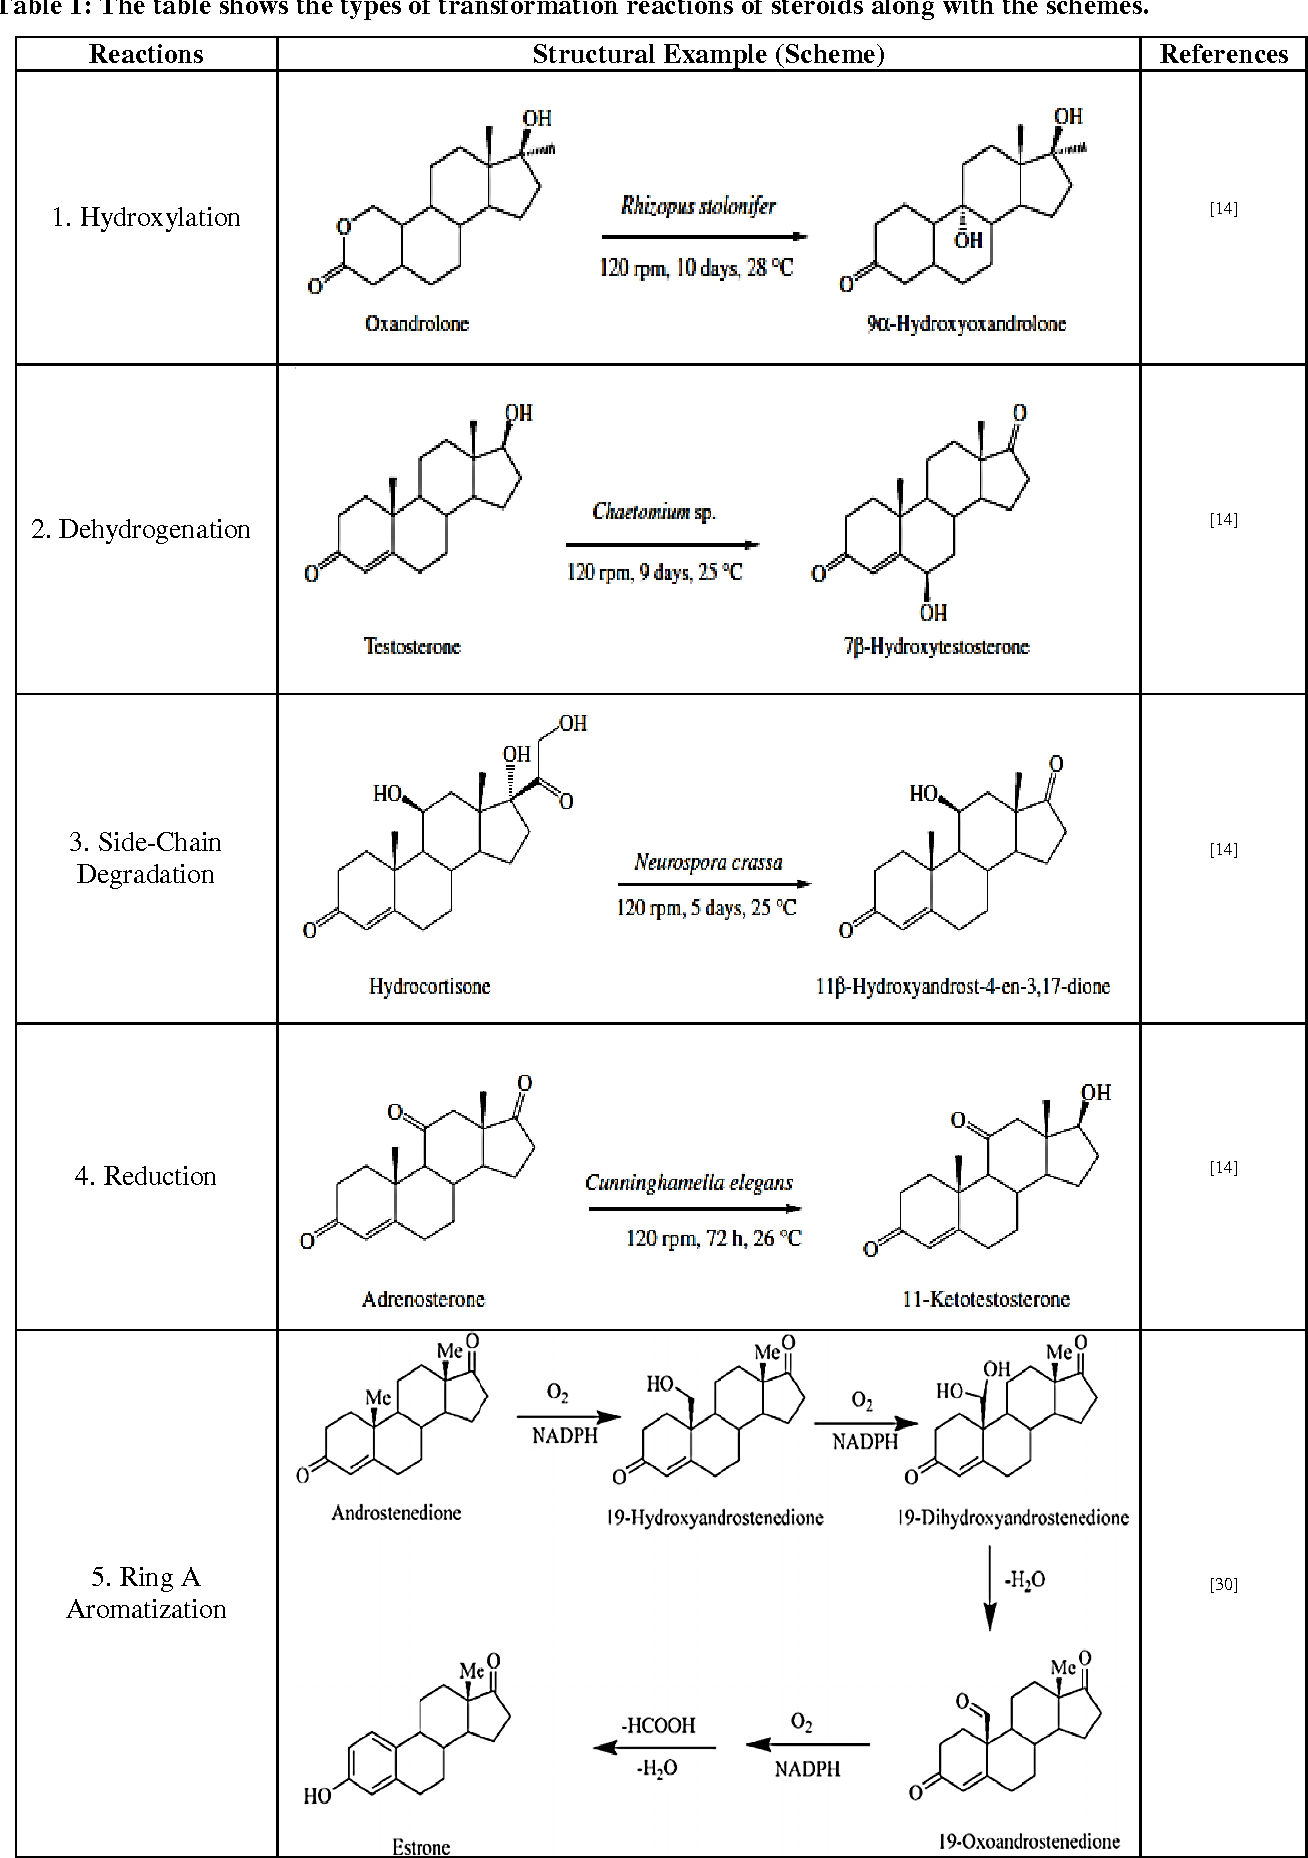 Table 1 from MICROBIAL TRANSFORMATION OF STEROIDS : A FOCUS ON TYPES